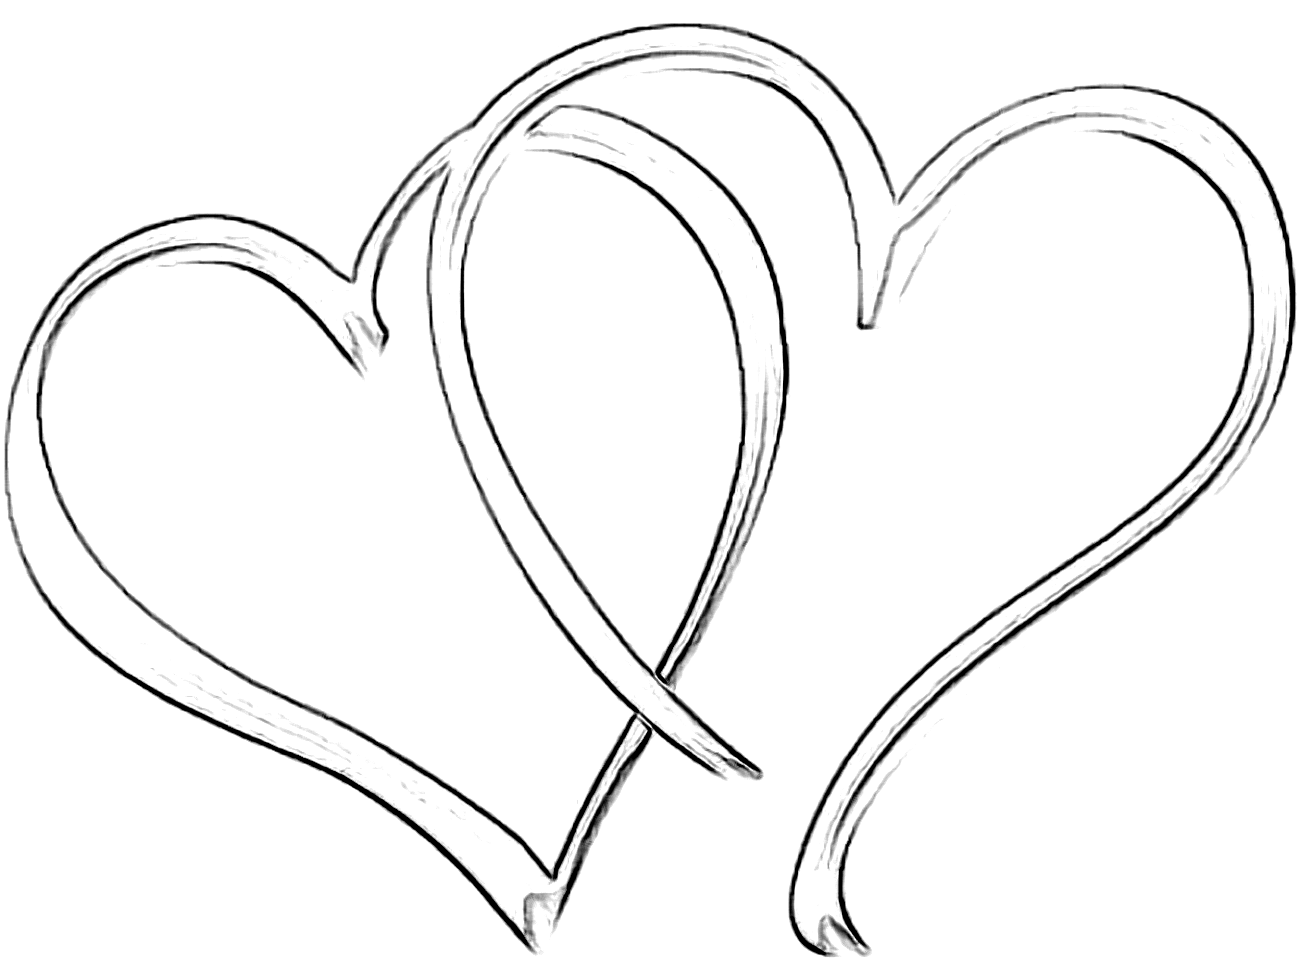 double heart coloring pages - photo#17